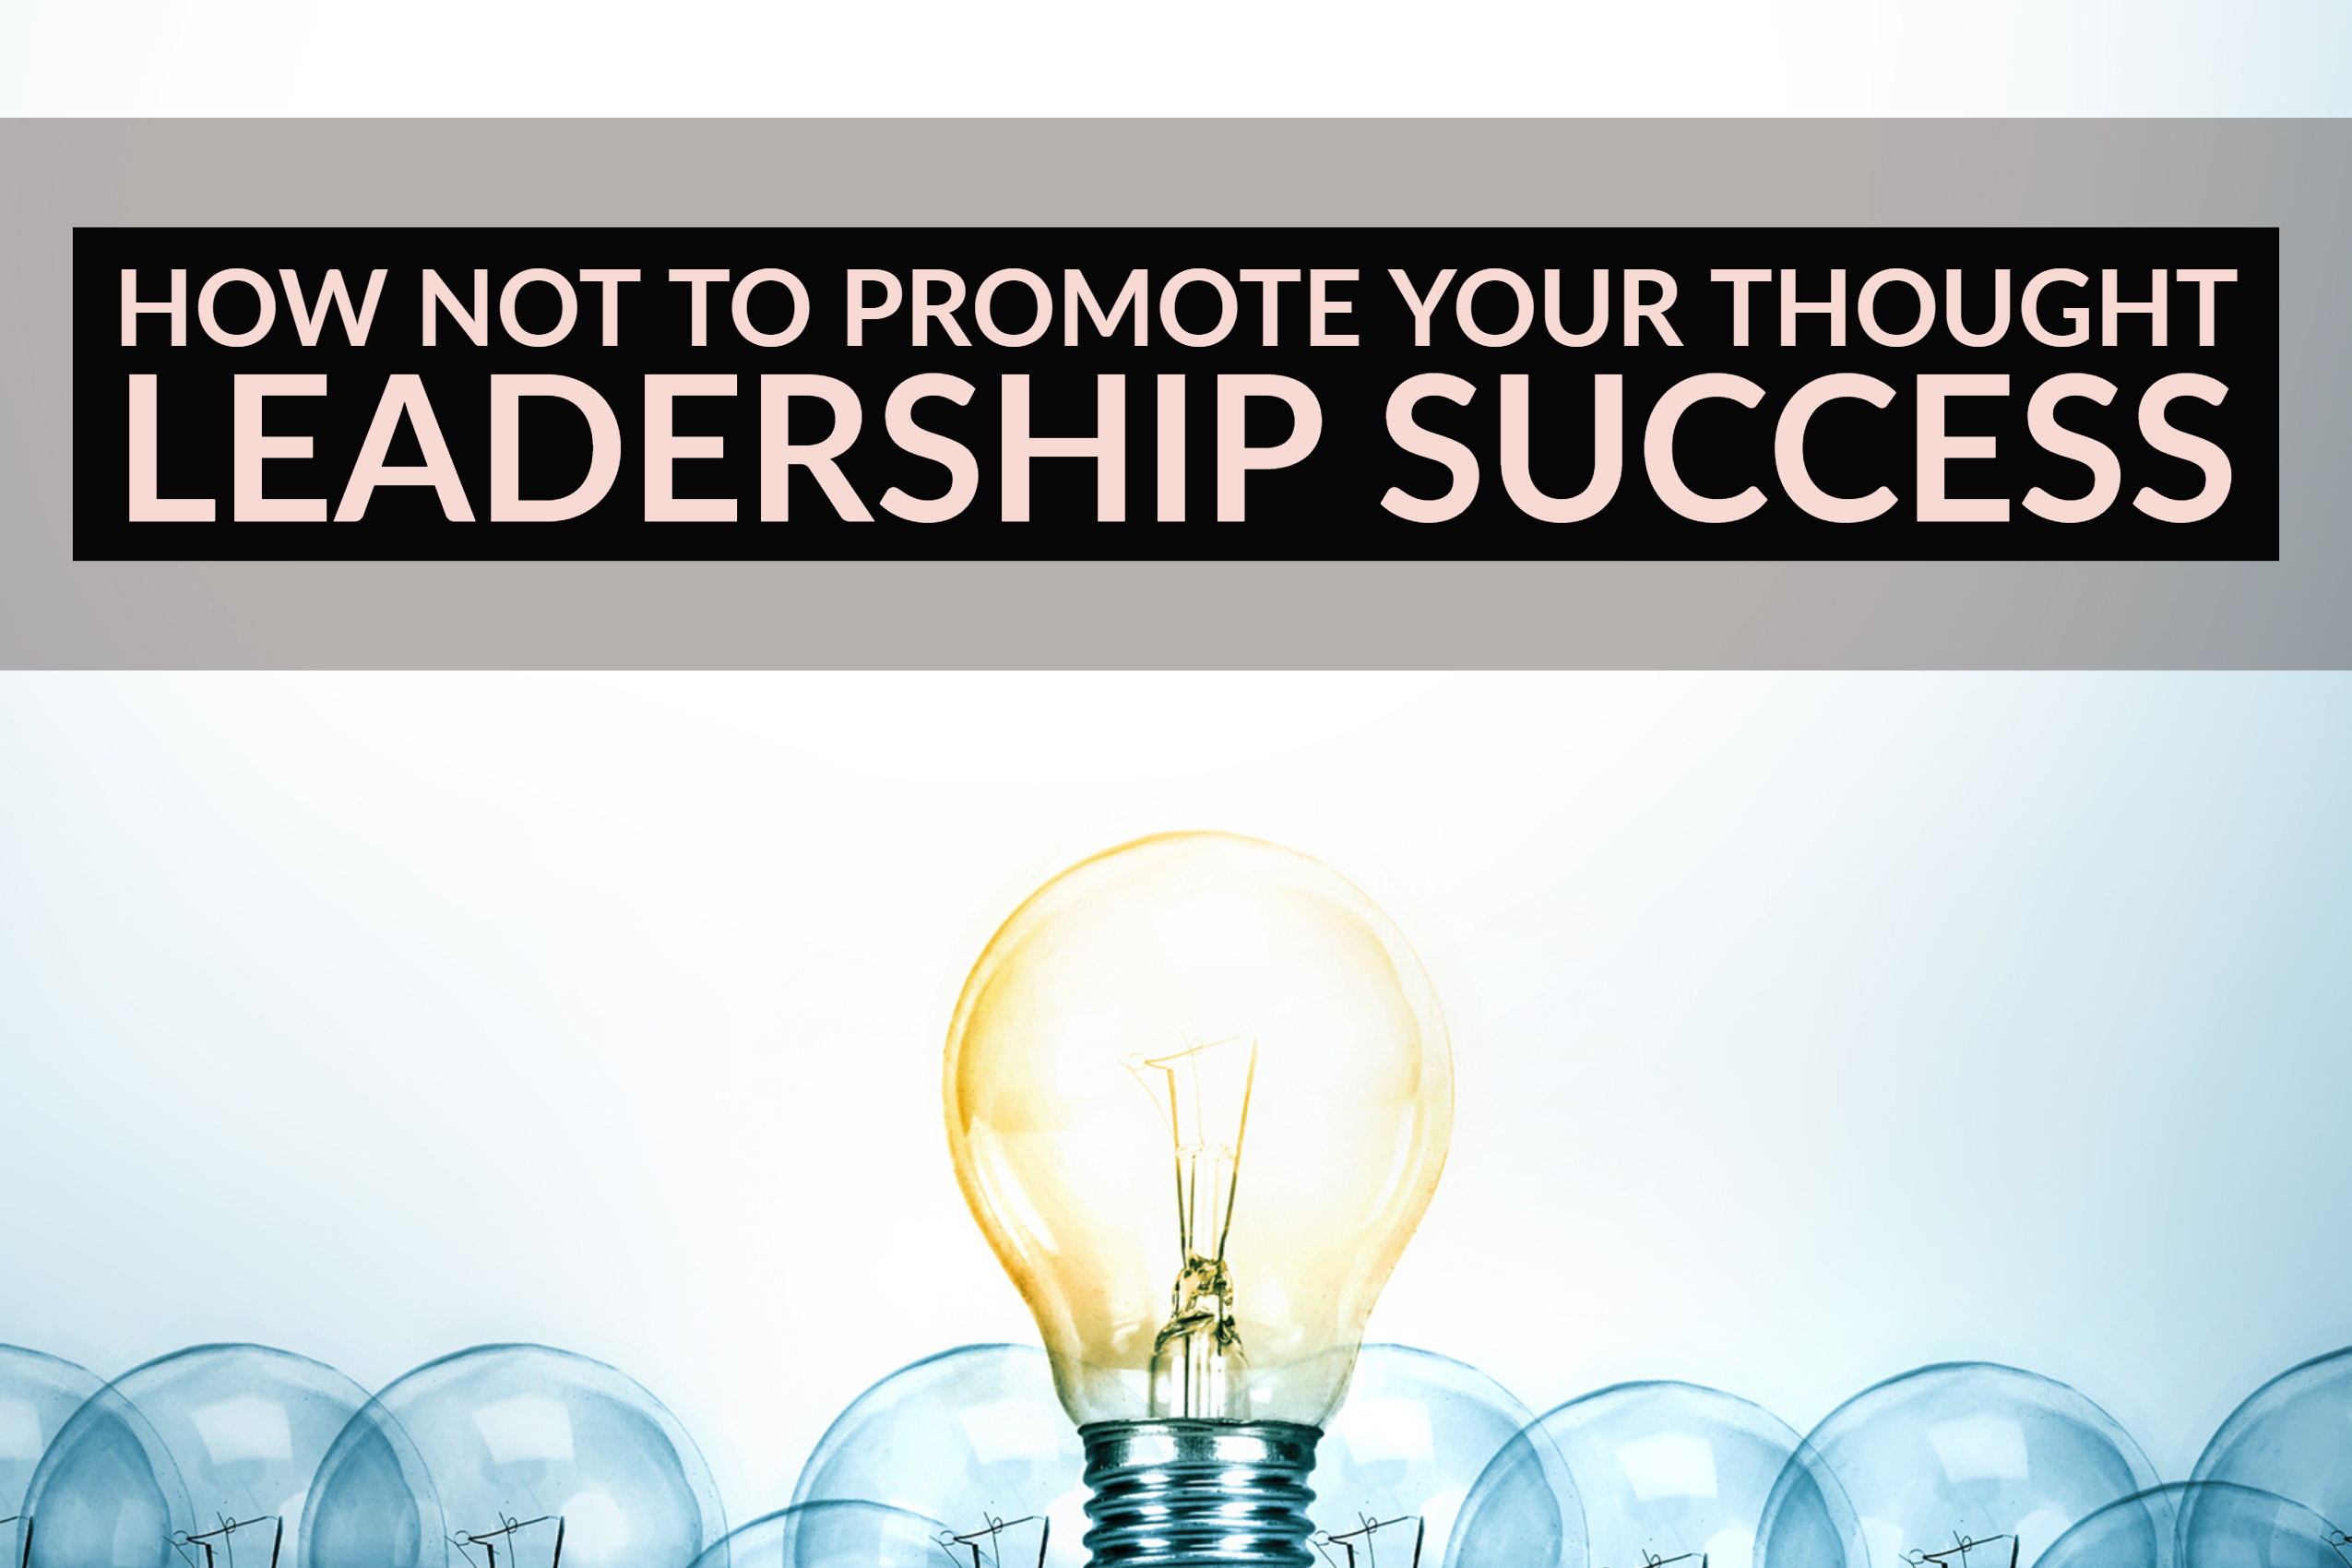 How Not To Promote Your Thought Leadership Success